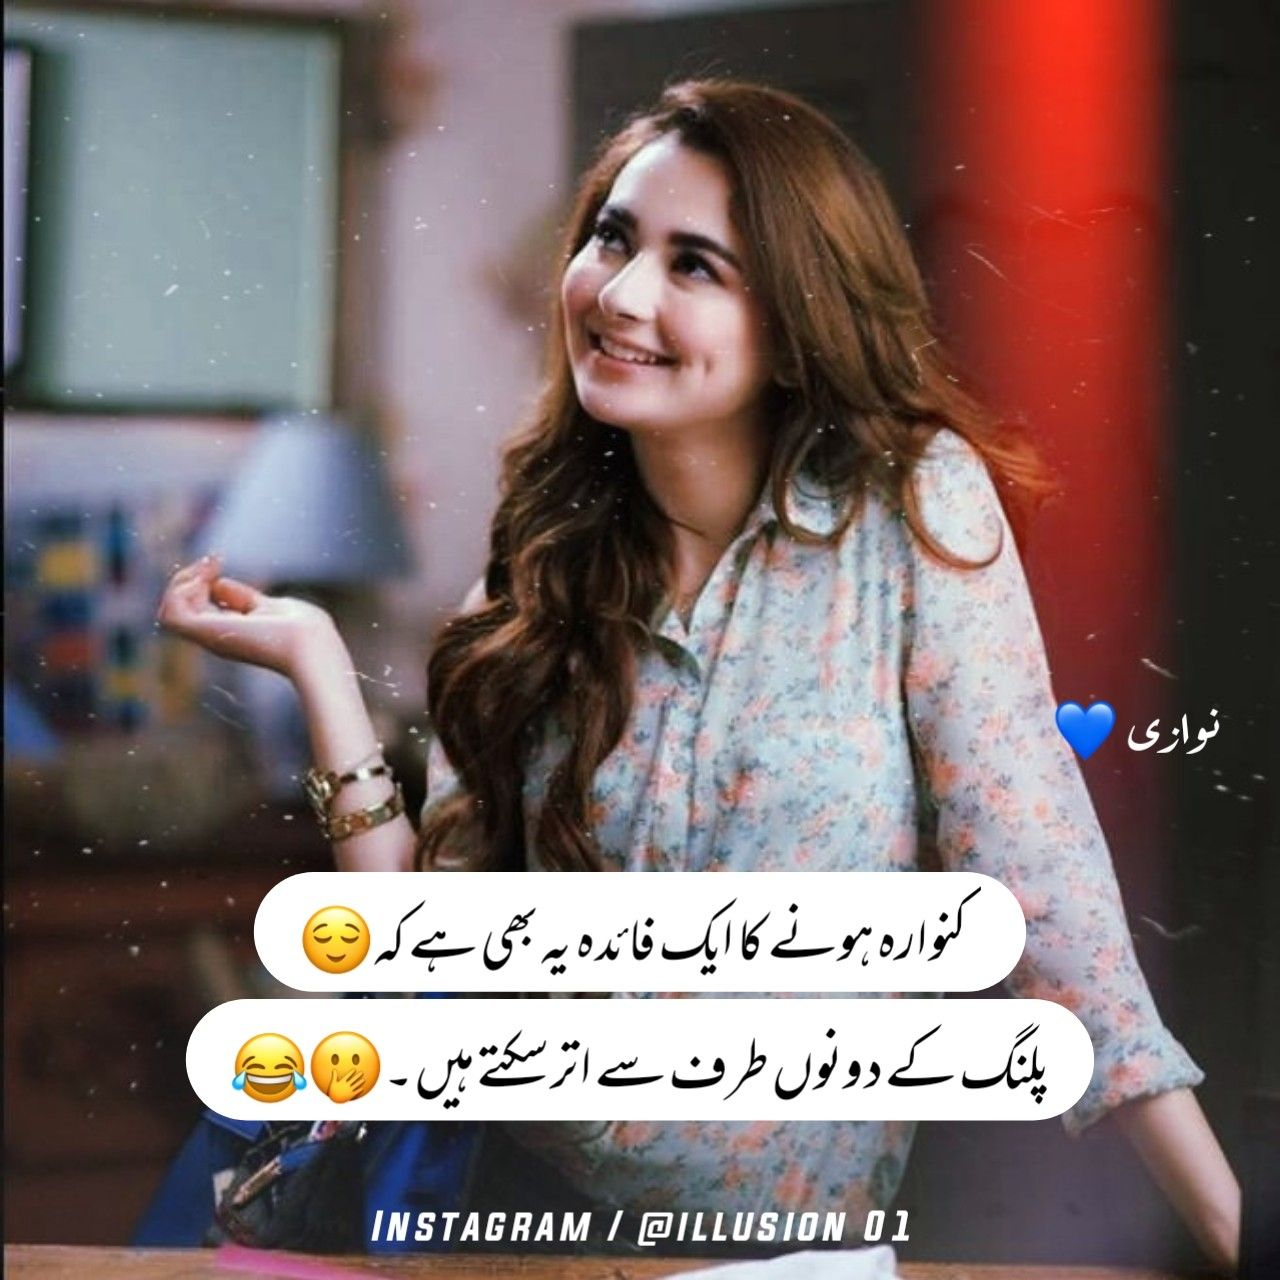 Urdu Poetry Funny Girl Quotes Cute Funny Quotes Best Smile Quotes